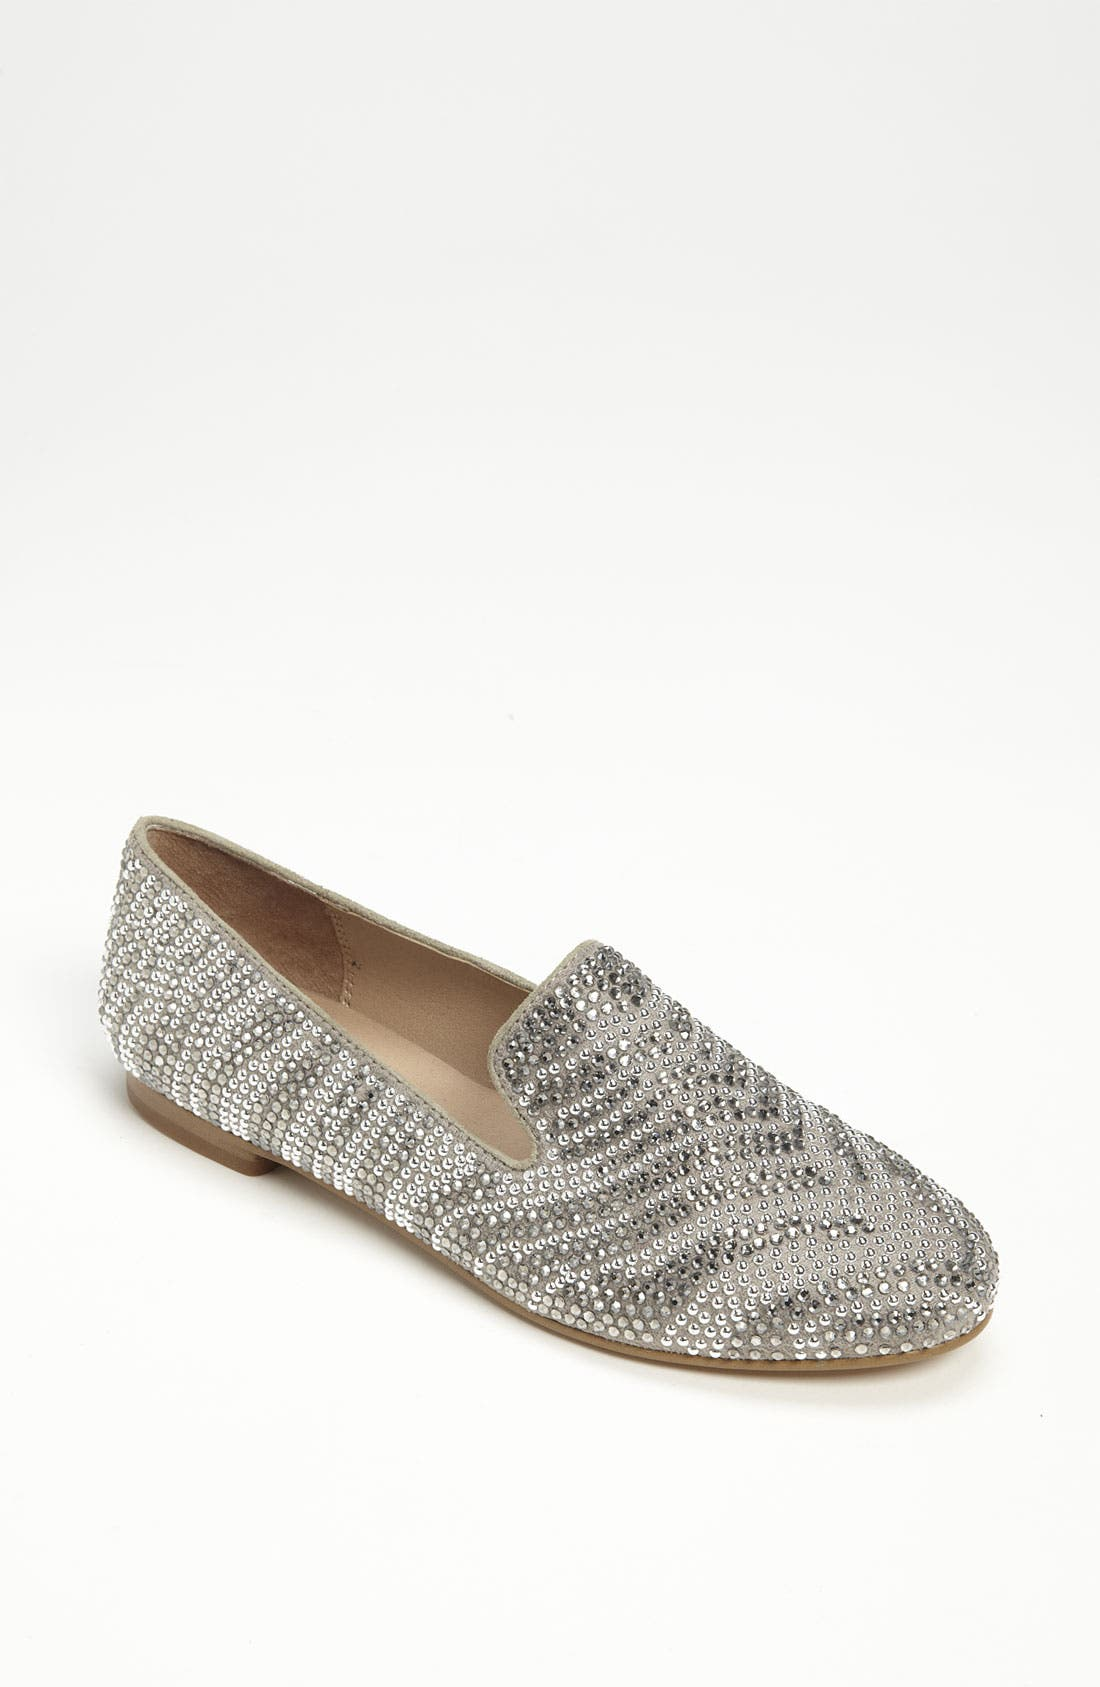 Alternate Image 1 Selected - Steve Madden 'Conncord' Flat